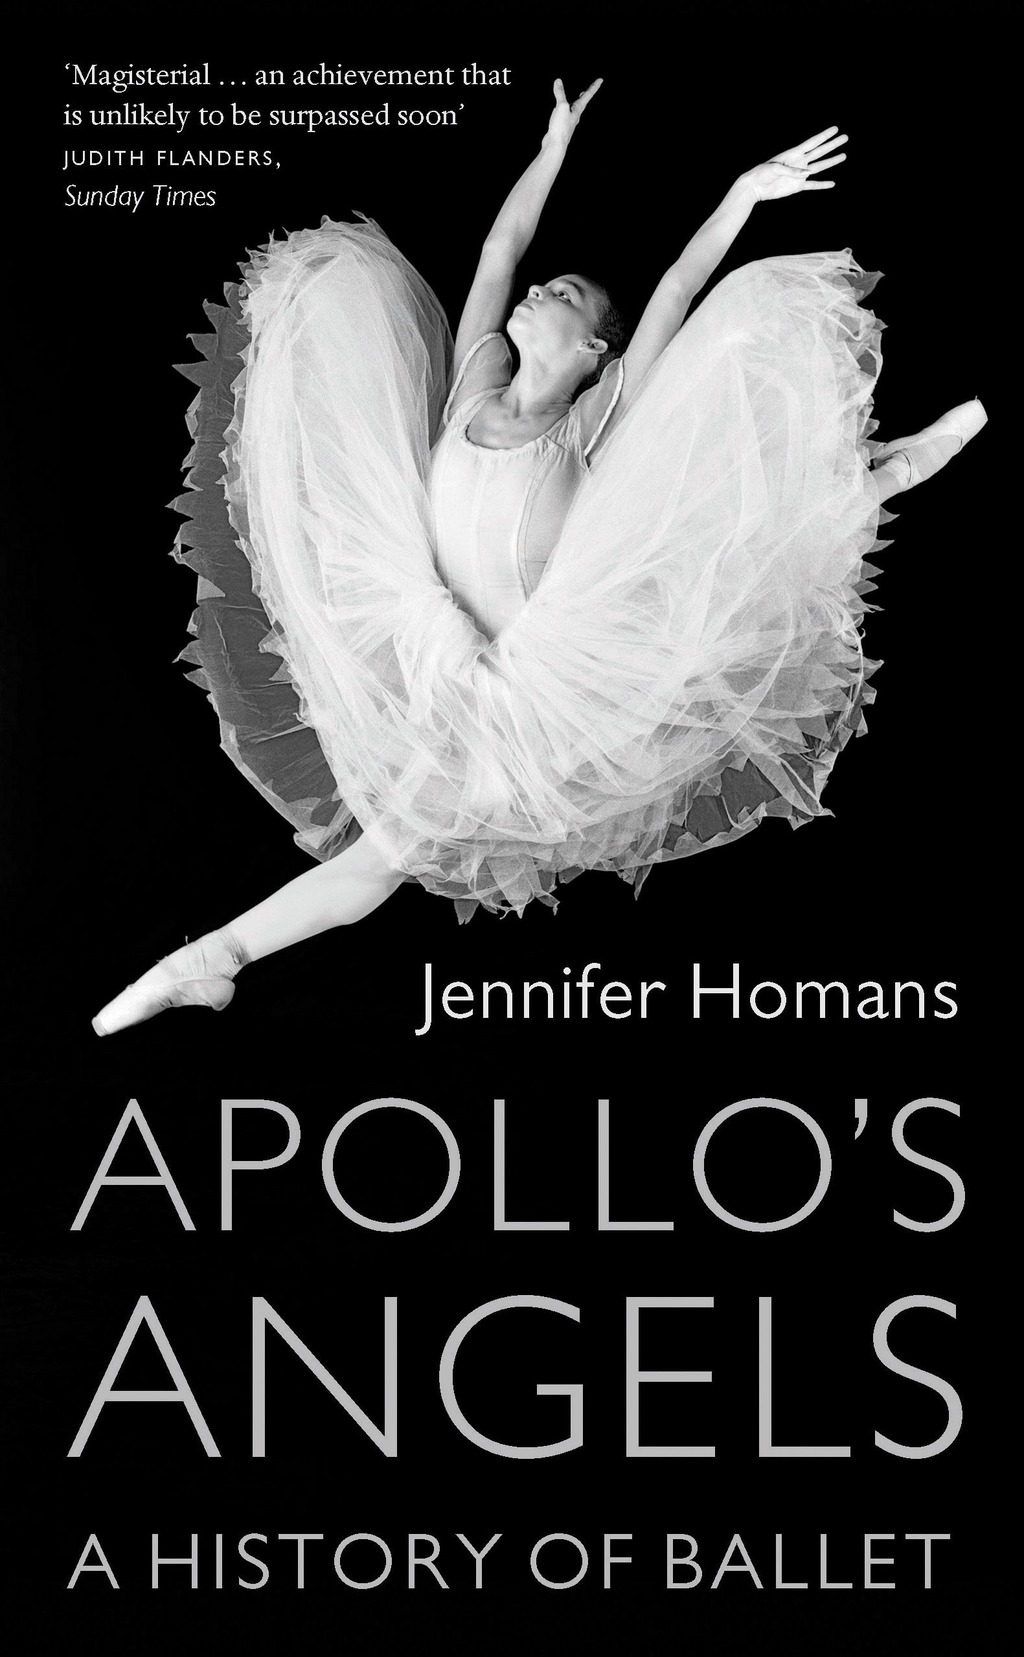 Apollo's Angels A History Of Ballet